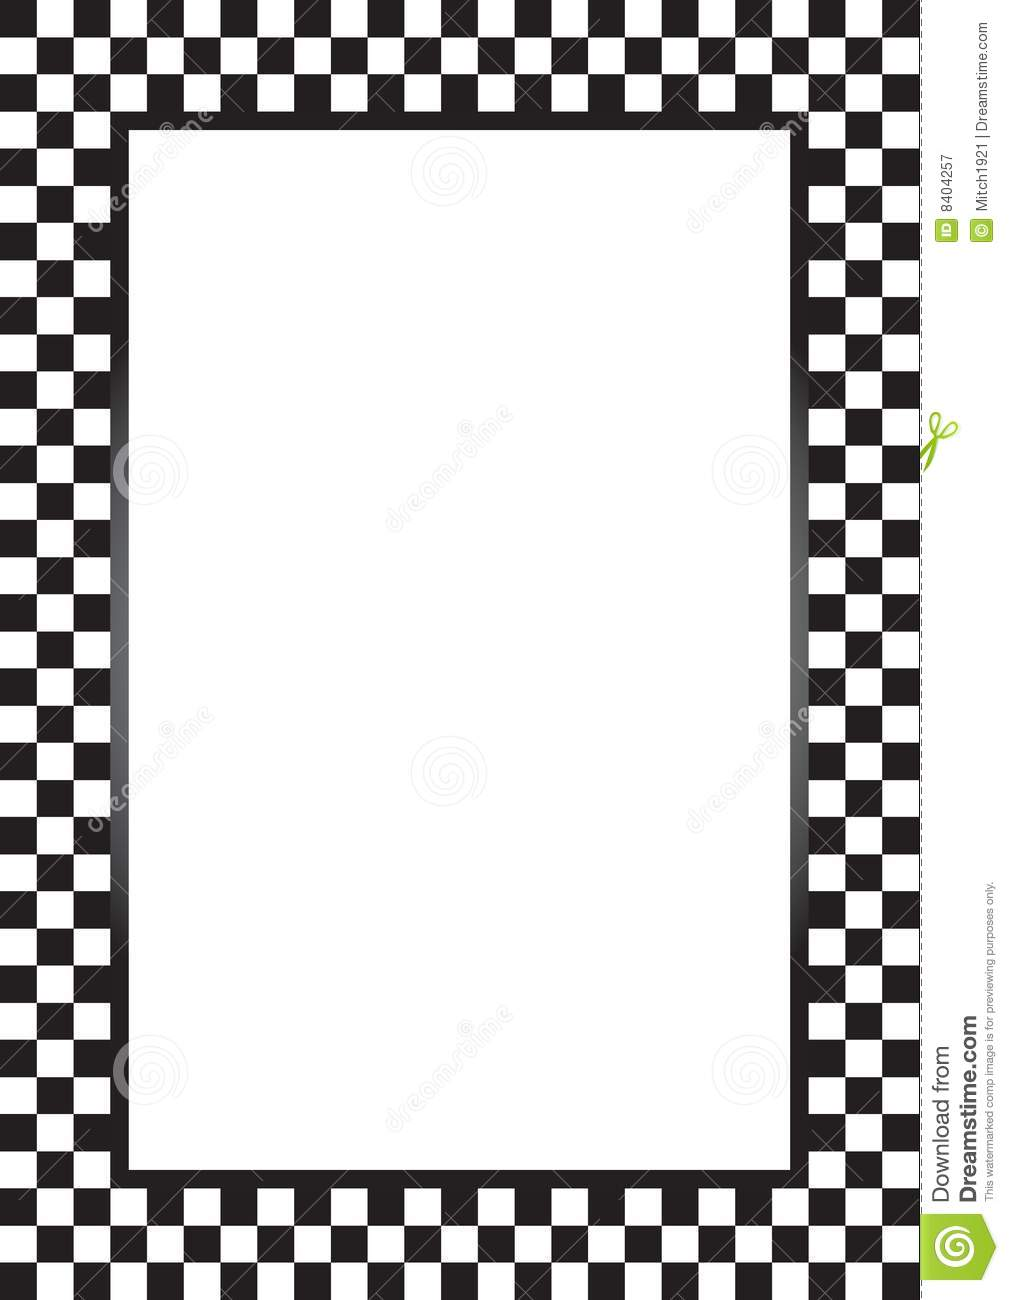 Royalty Free Stock Photography Racing Border Image8404257 on Black Checkered Border